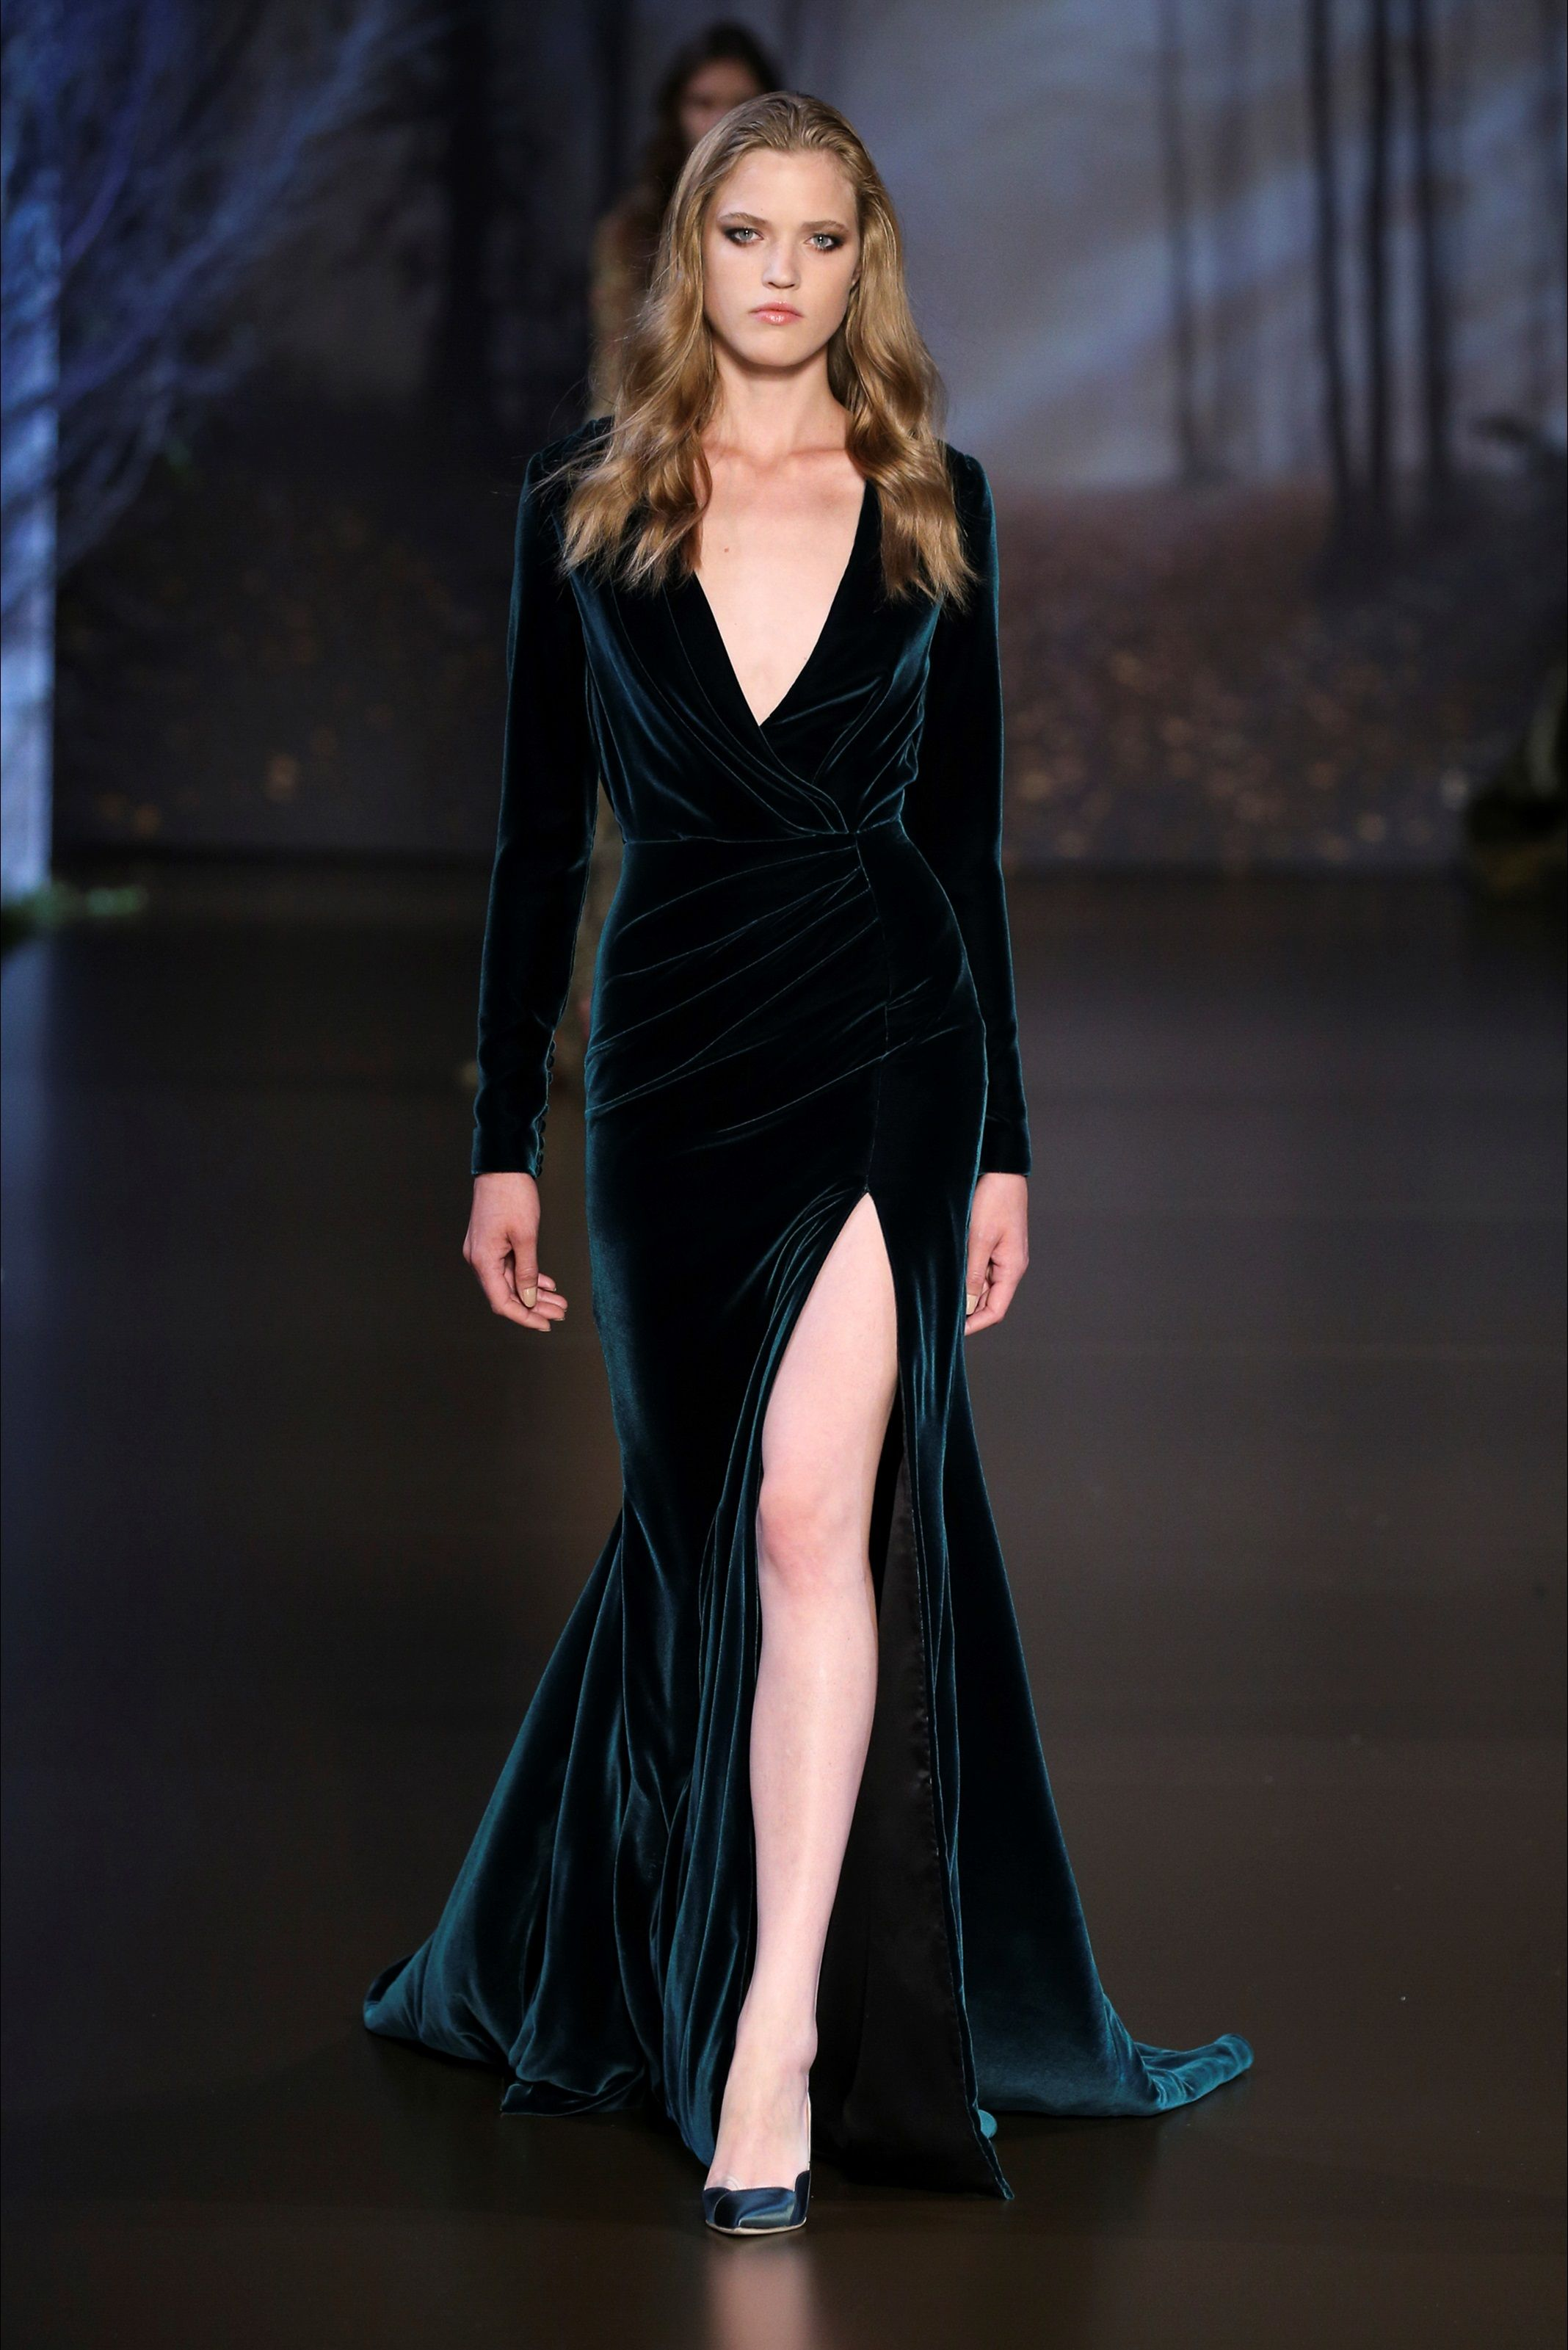 Ralph u russo fall winter zule pinterest fall winter